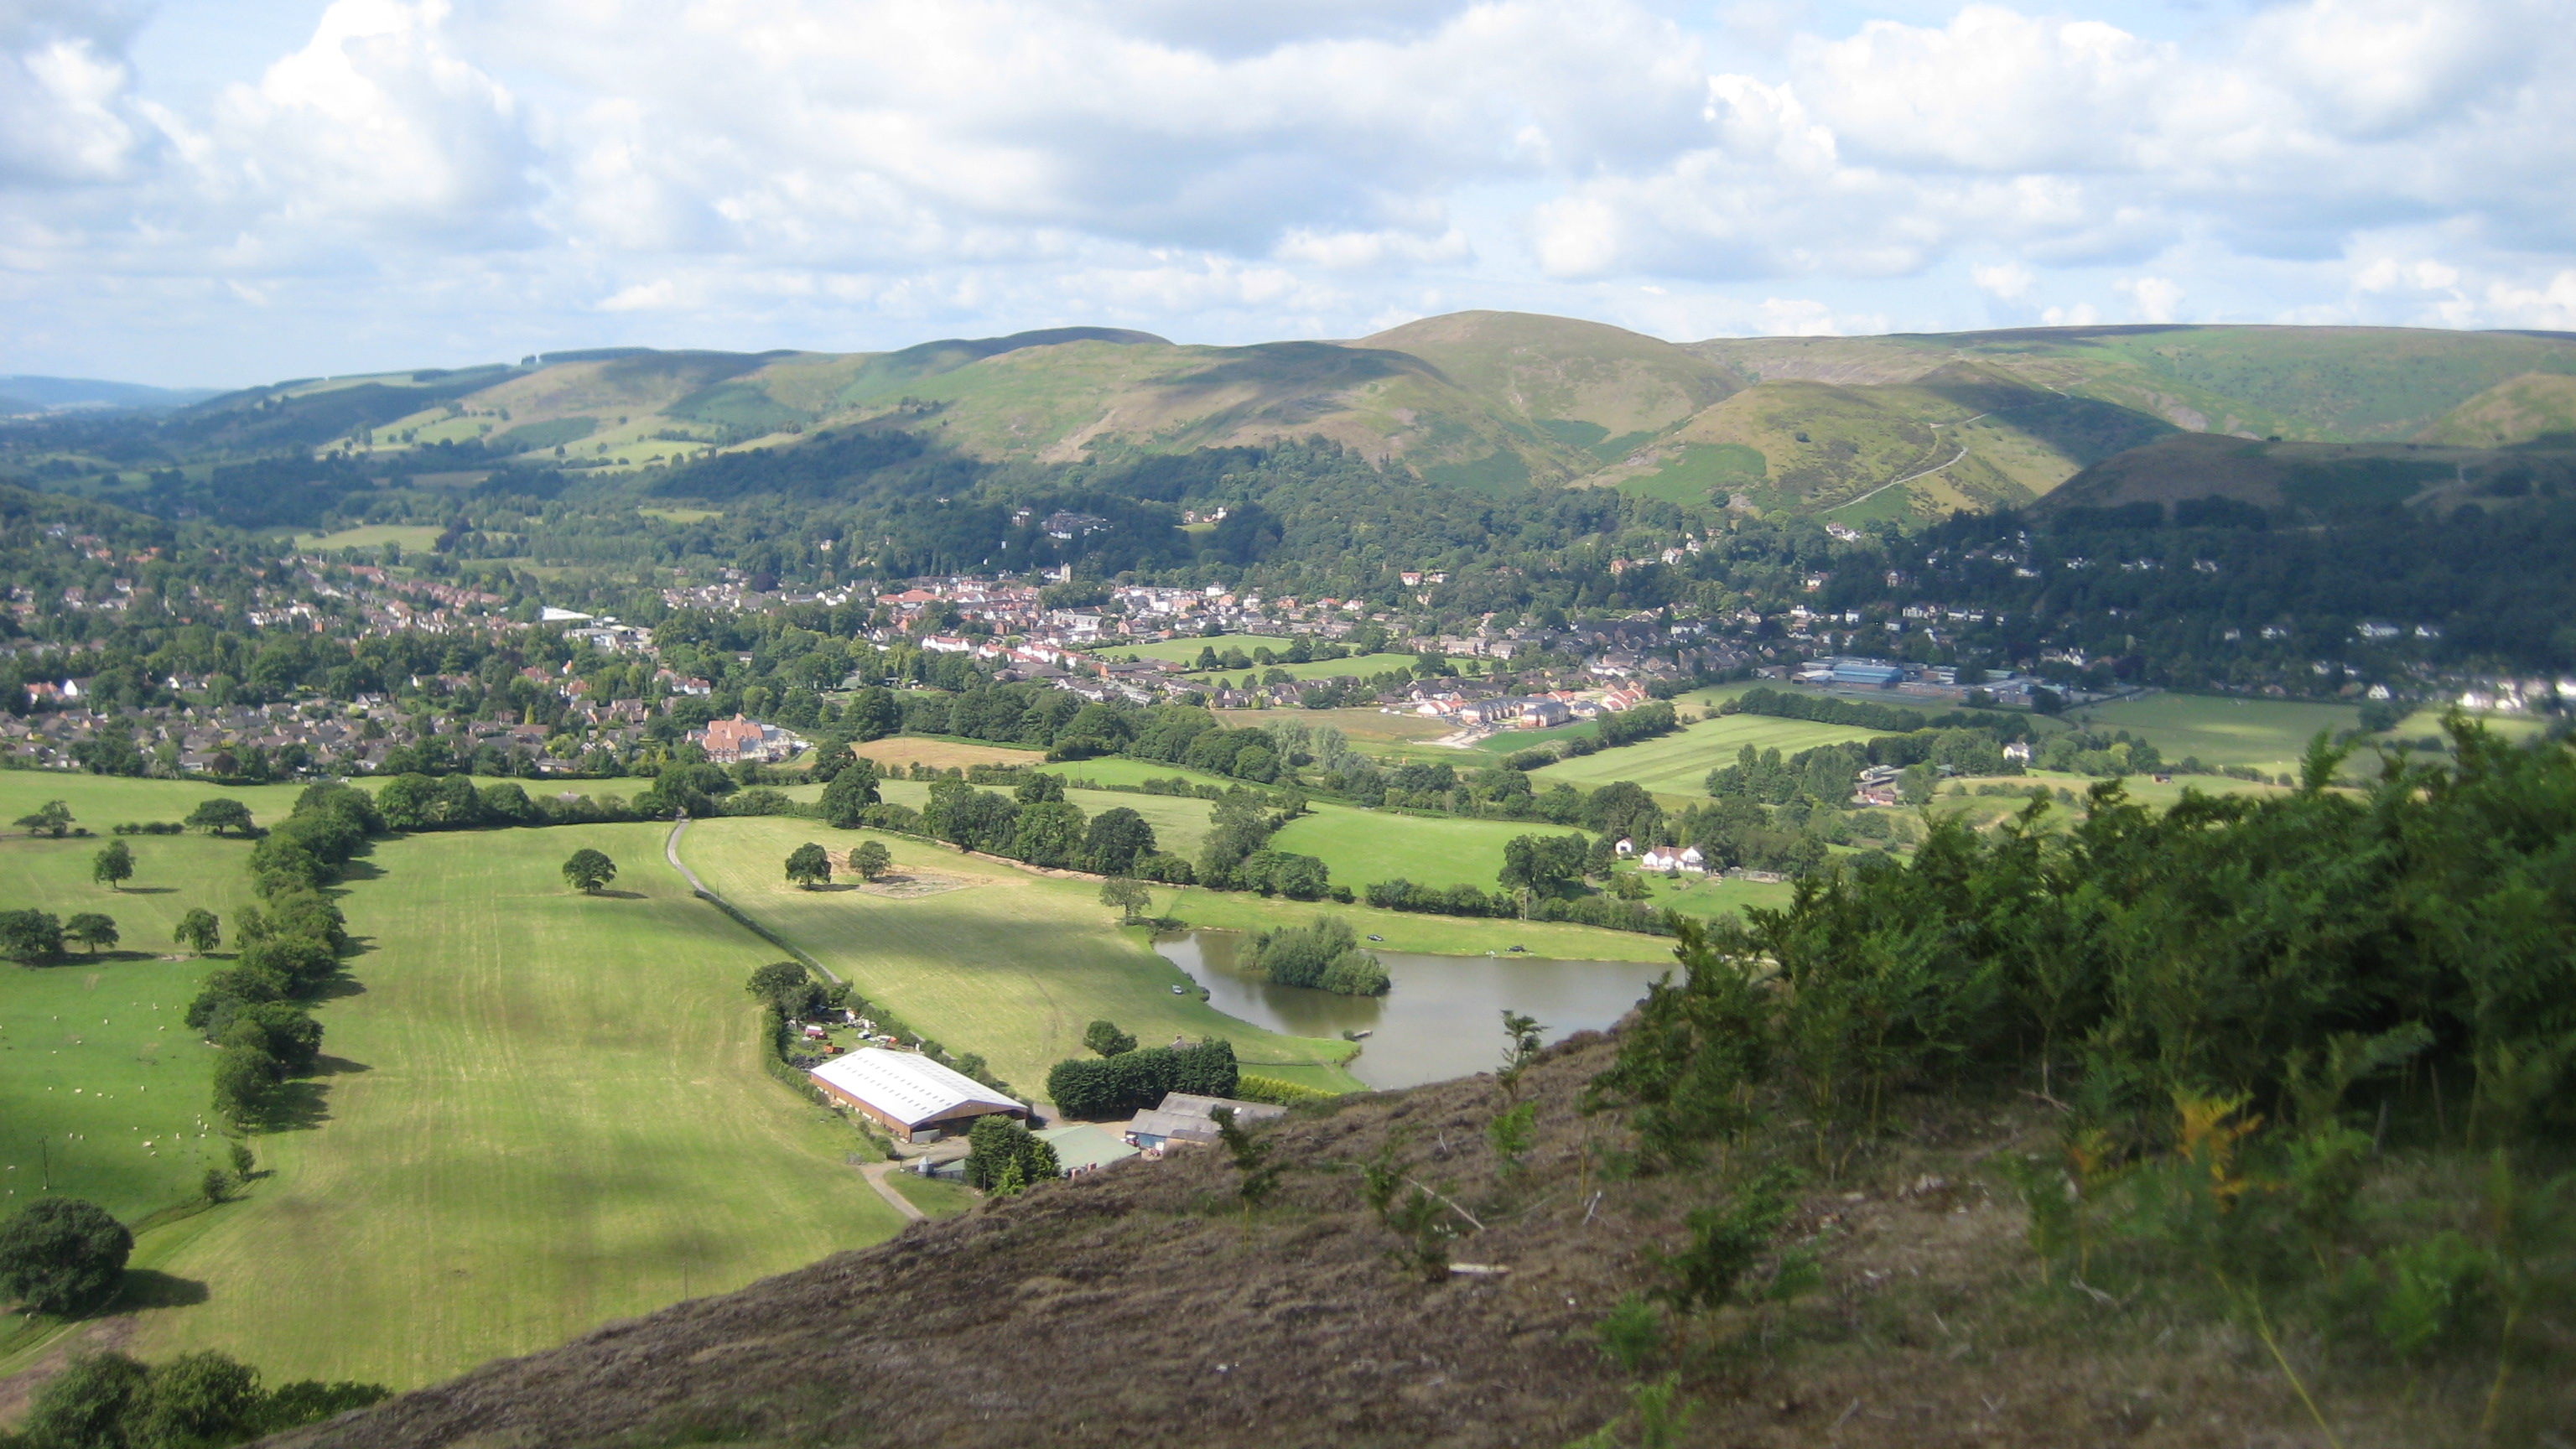 Church Stretton from Caer Caradoc